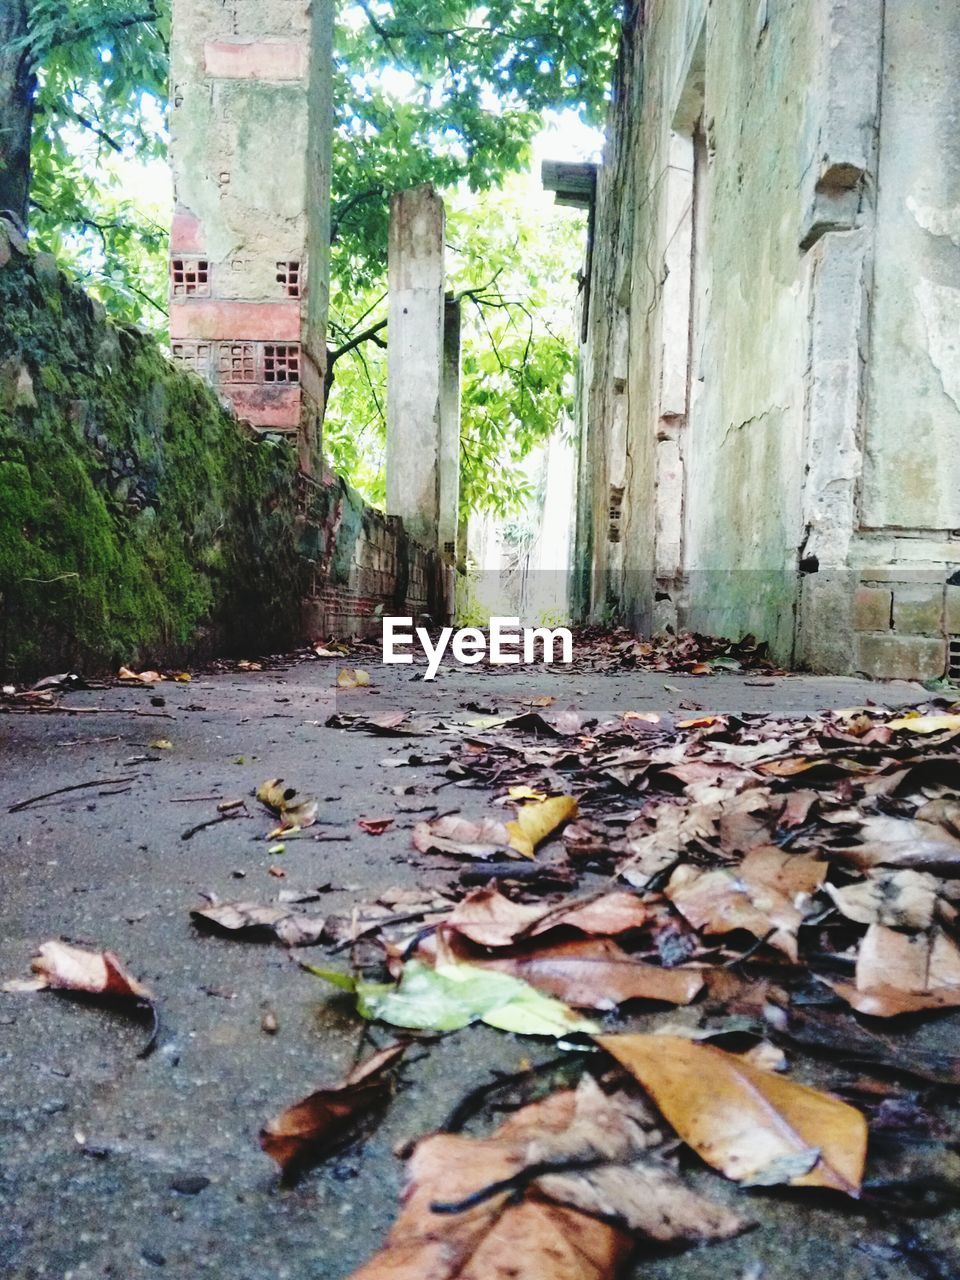 leaf, autumn, change, leaves, fallen, dry, day, no people, tree, nature, architecture, abandoned, outdoors, built structure, building exterior, close-up